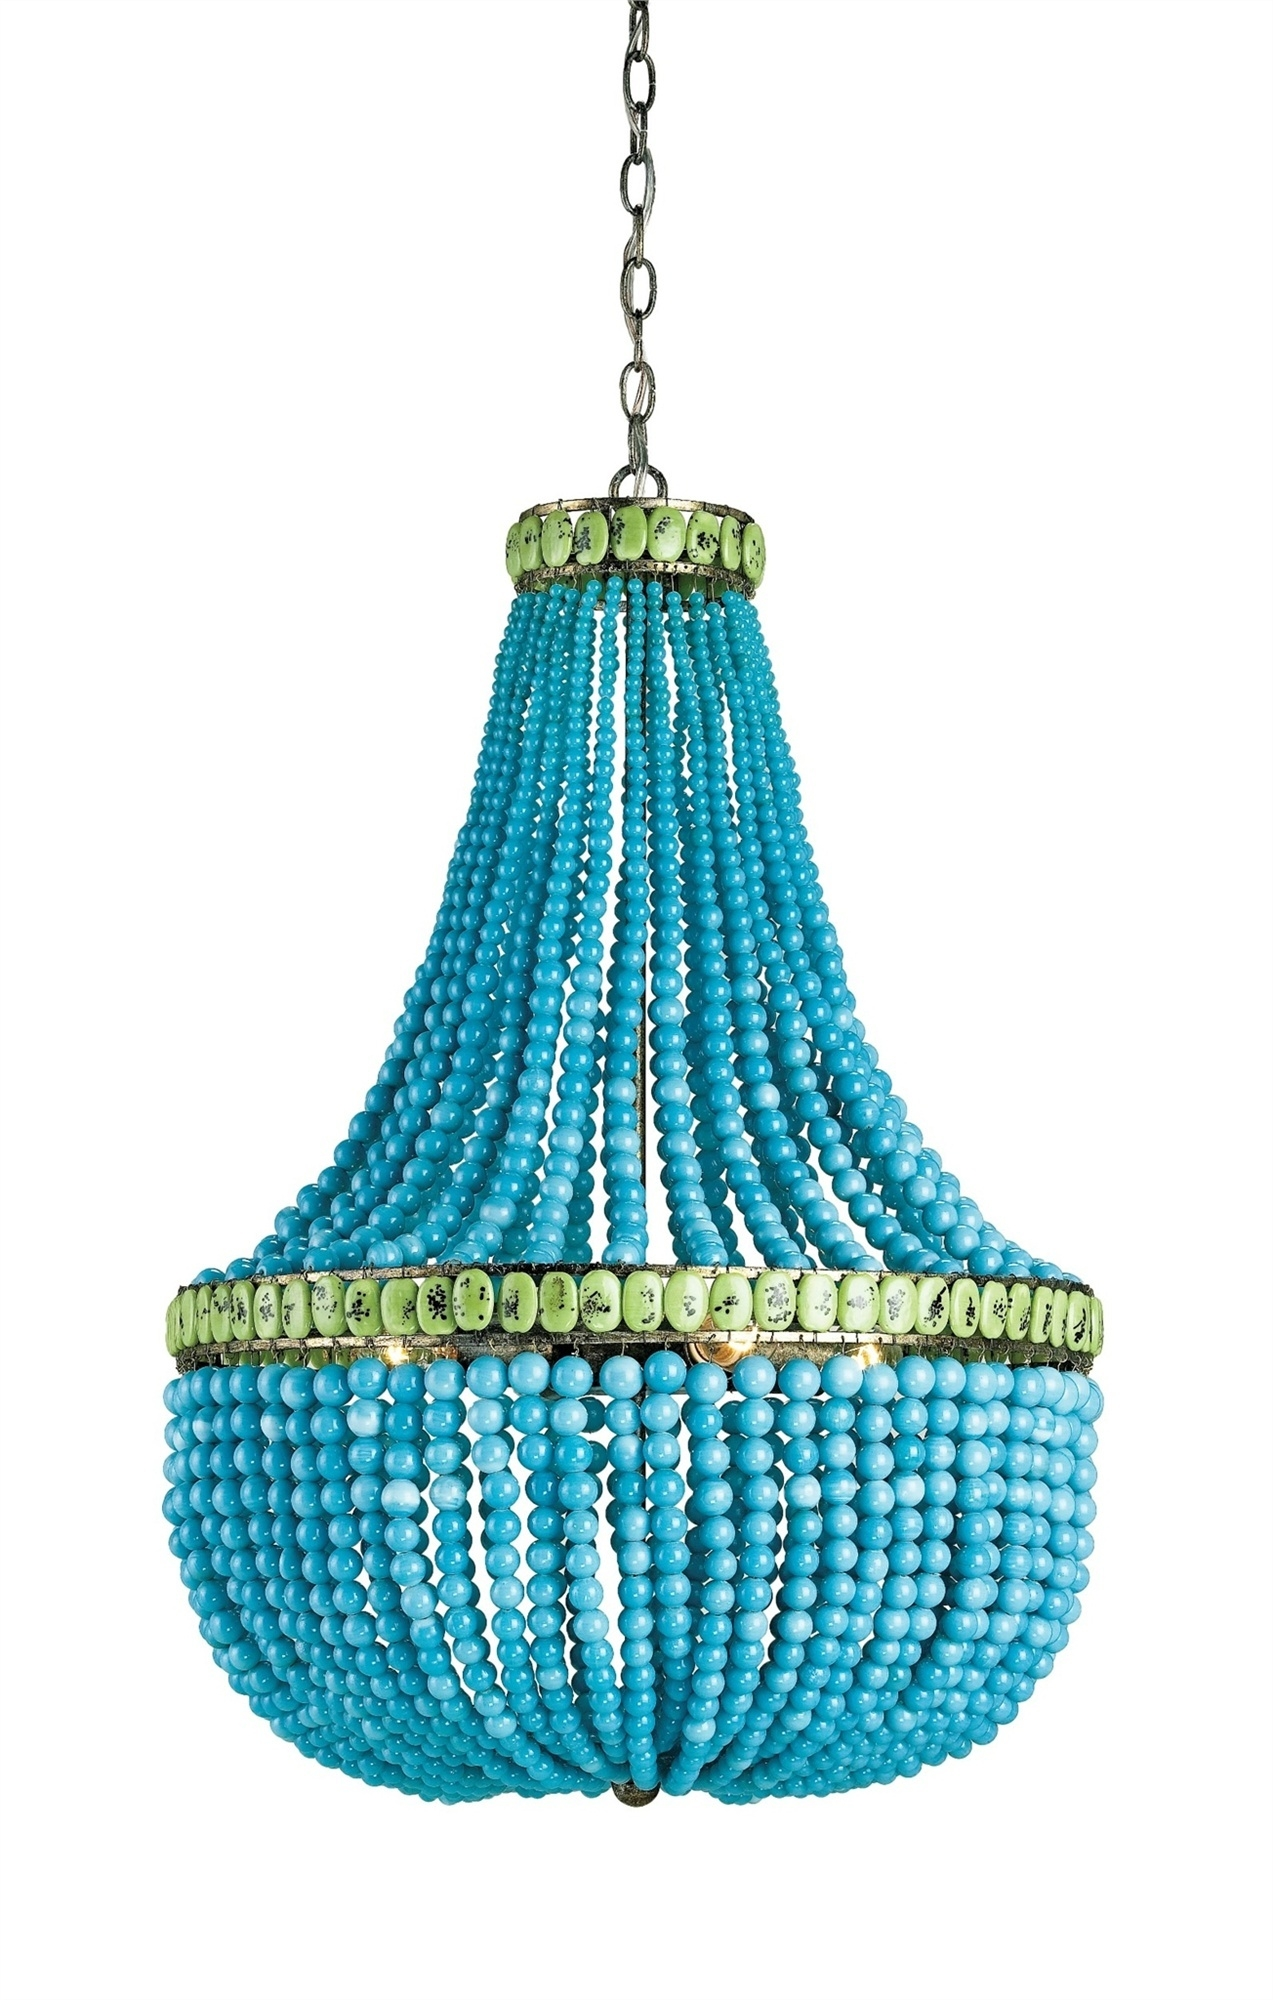 Hedy Chandelier Lighting Currey And Company Intended For Turquoise Chandelier Lights (View 6 of 25)